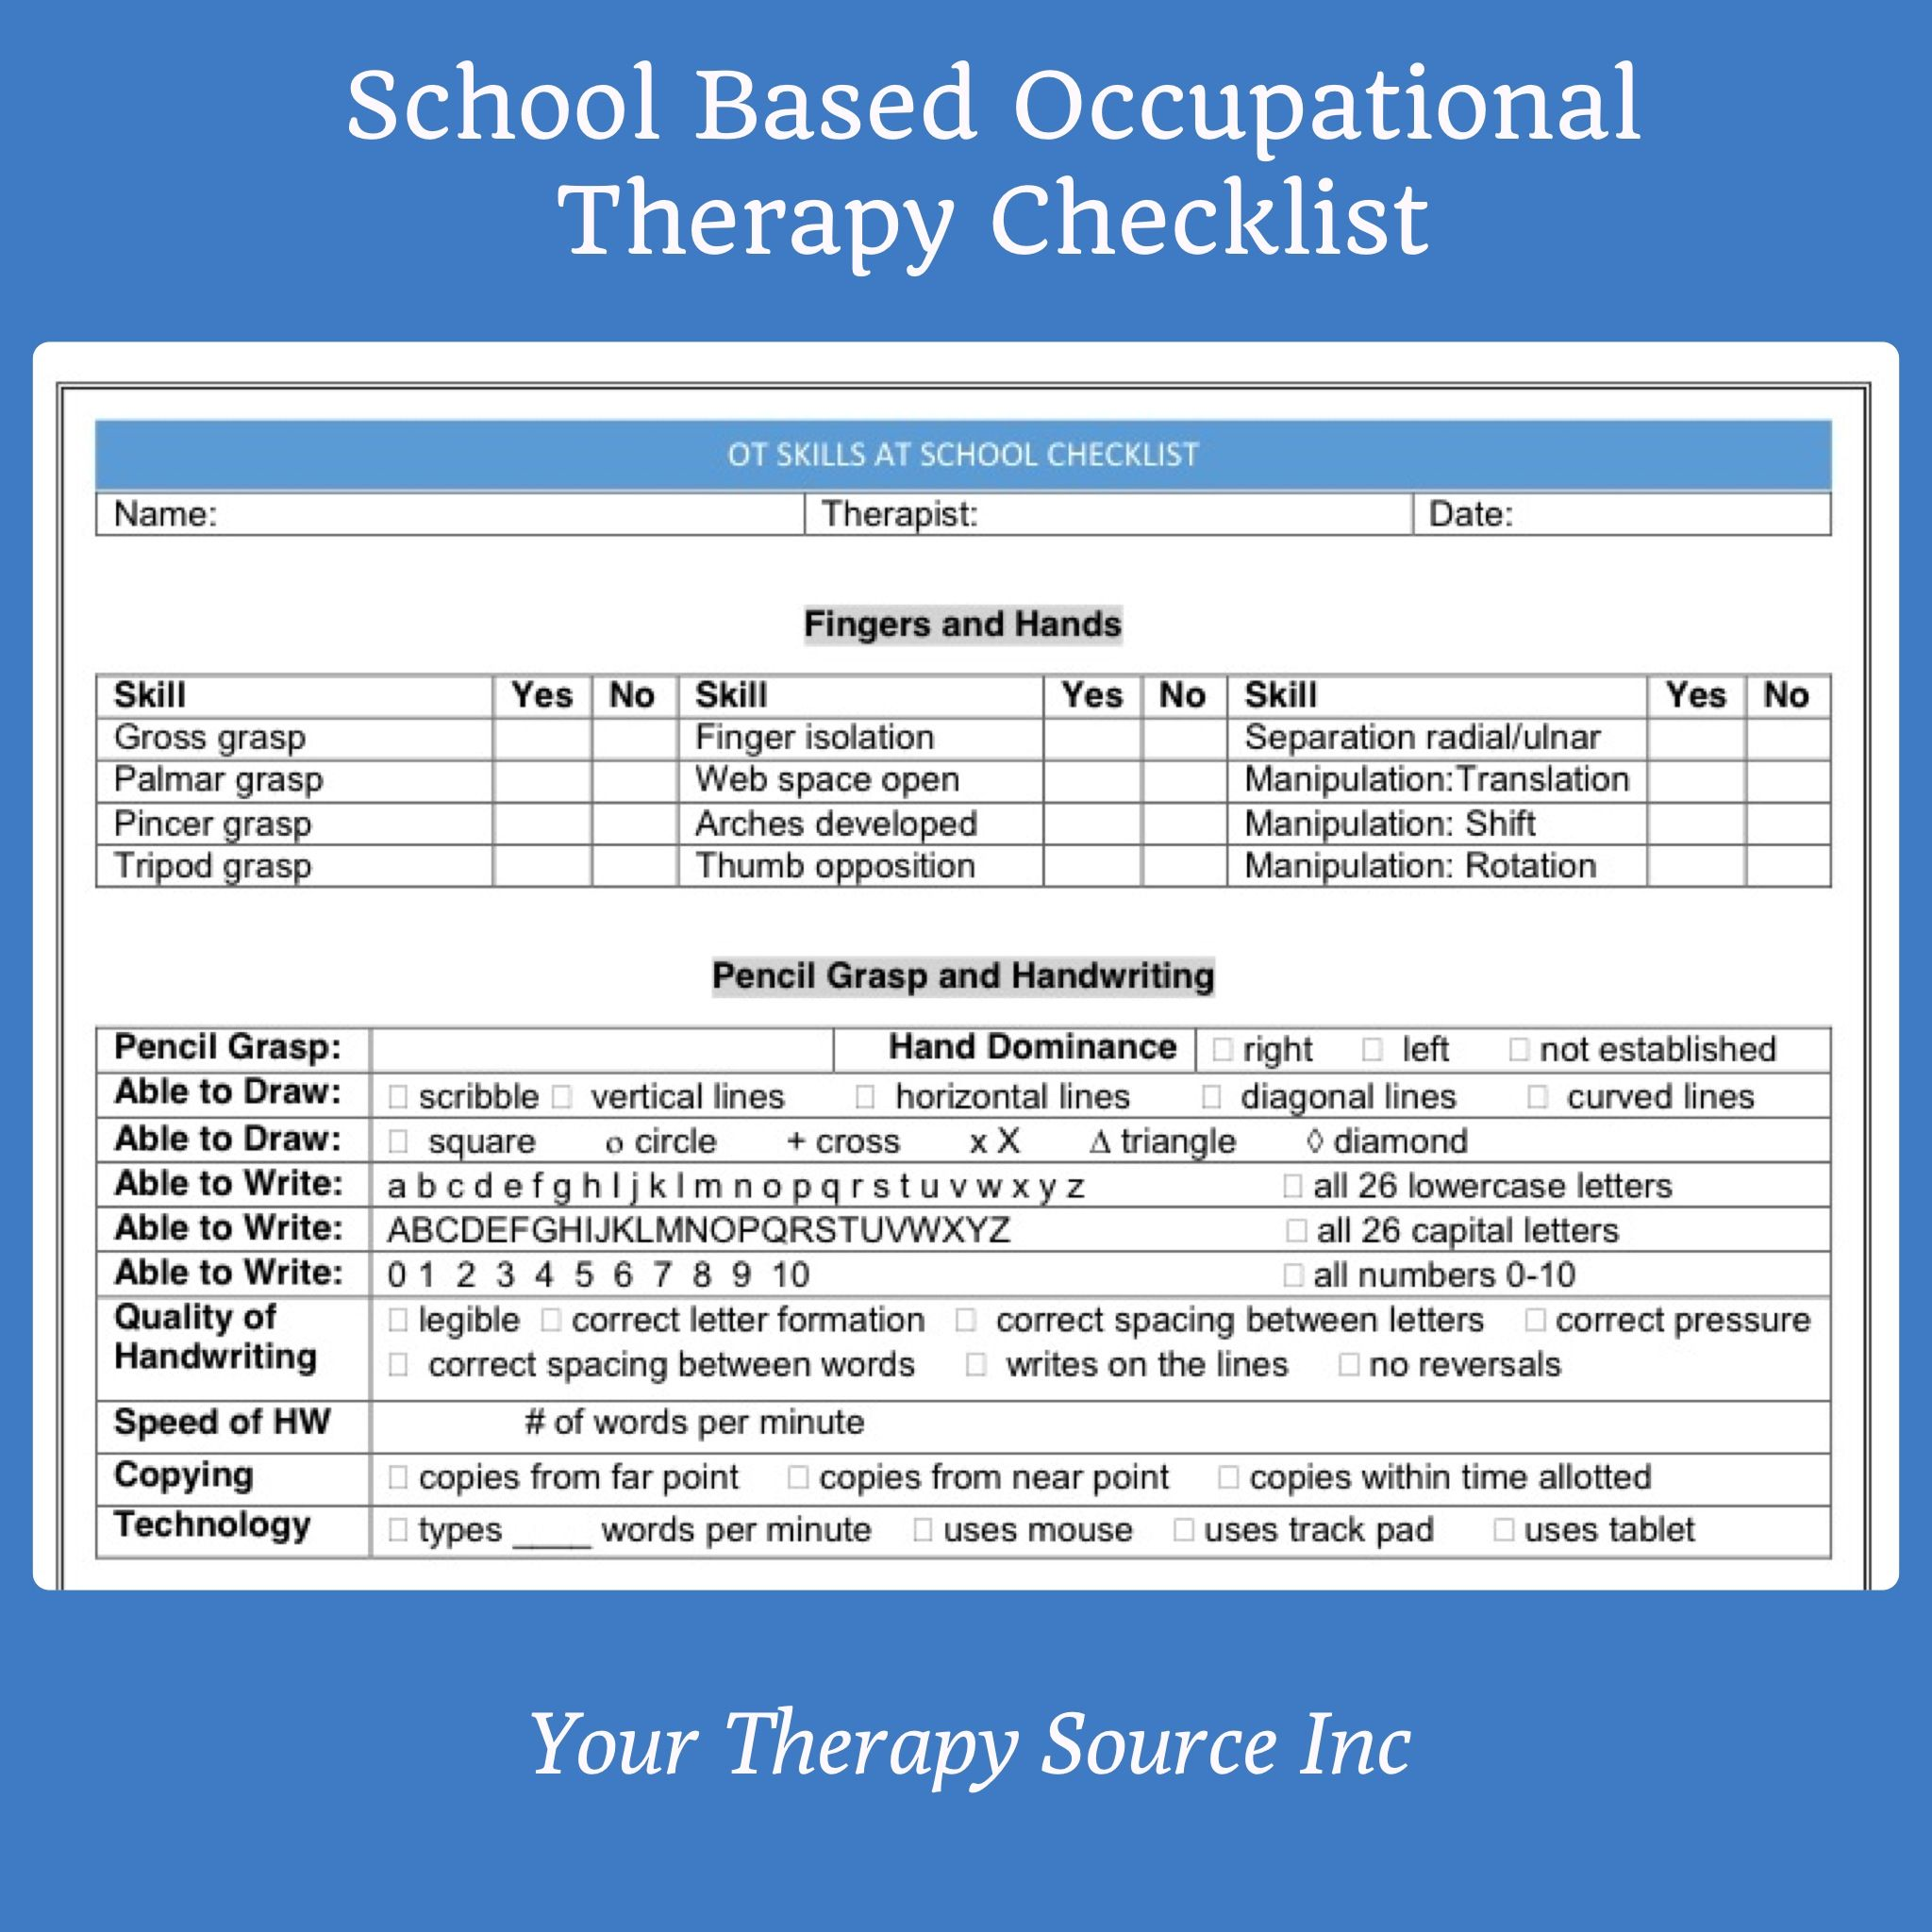 School Based Occupational Therapy Checklist  Your Therapy Source